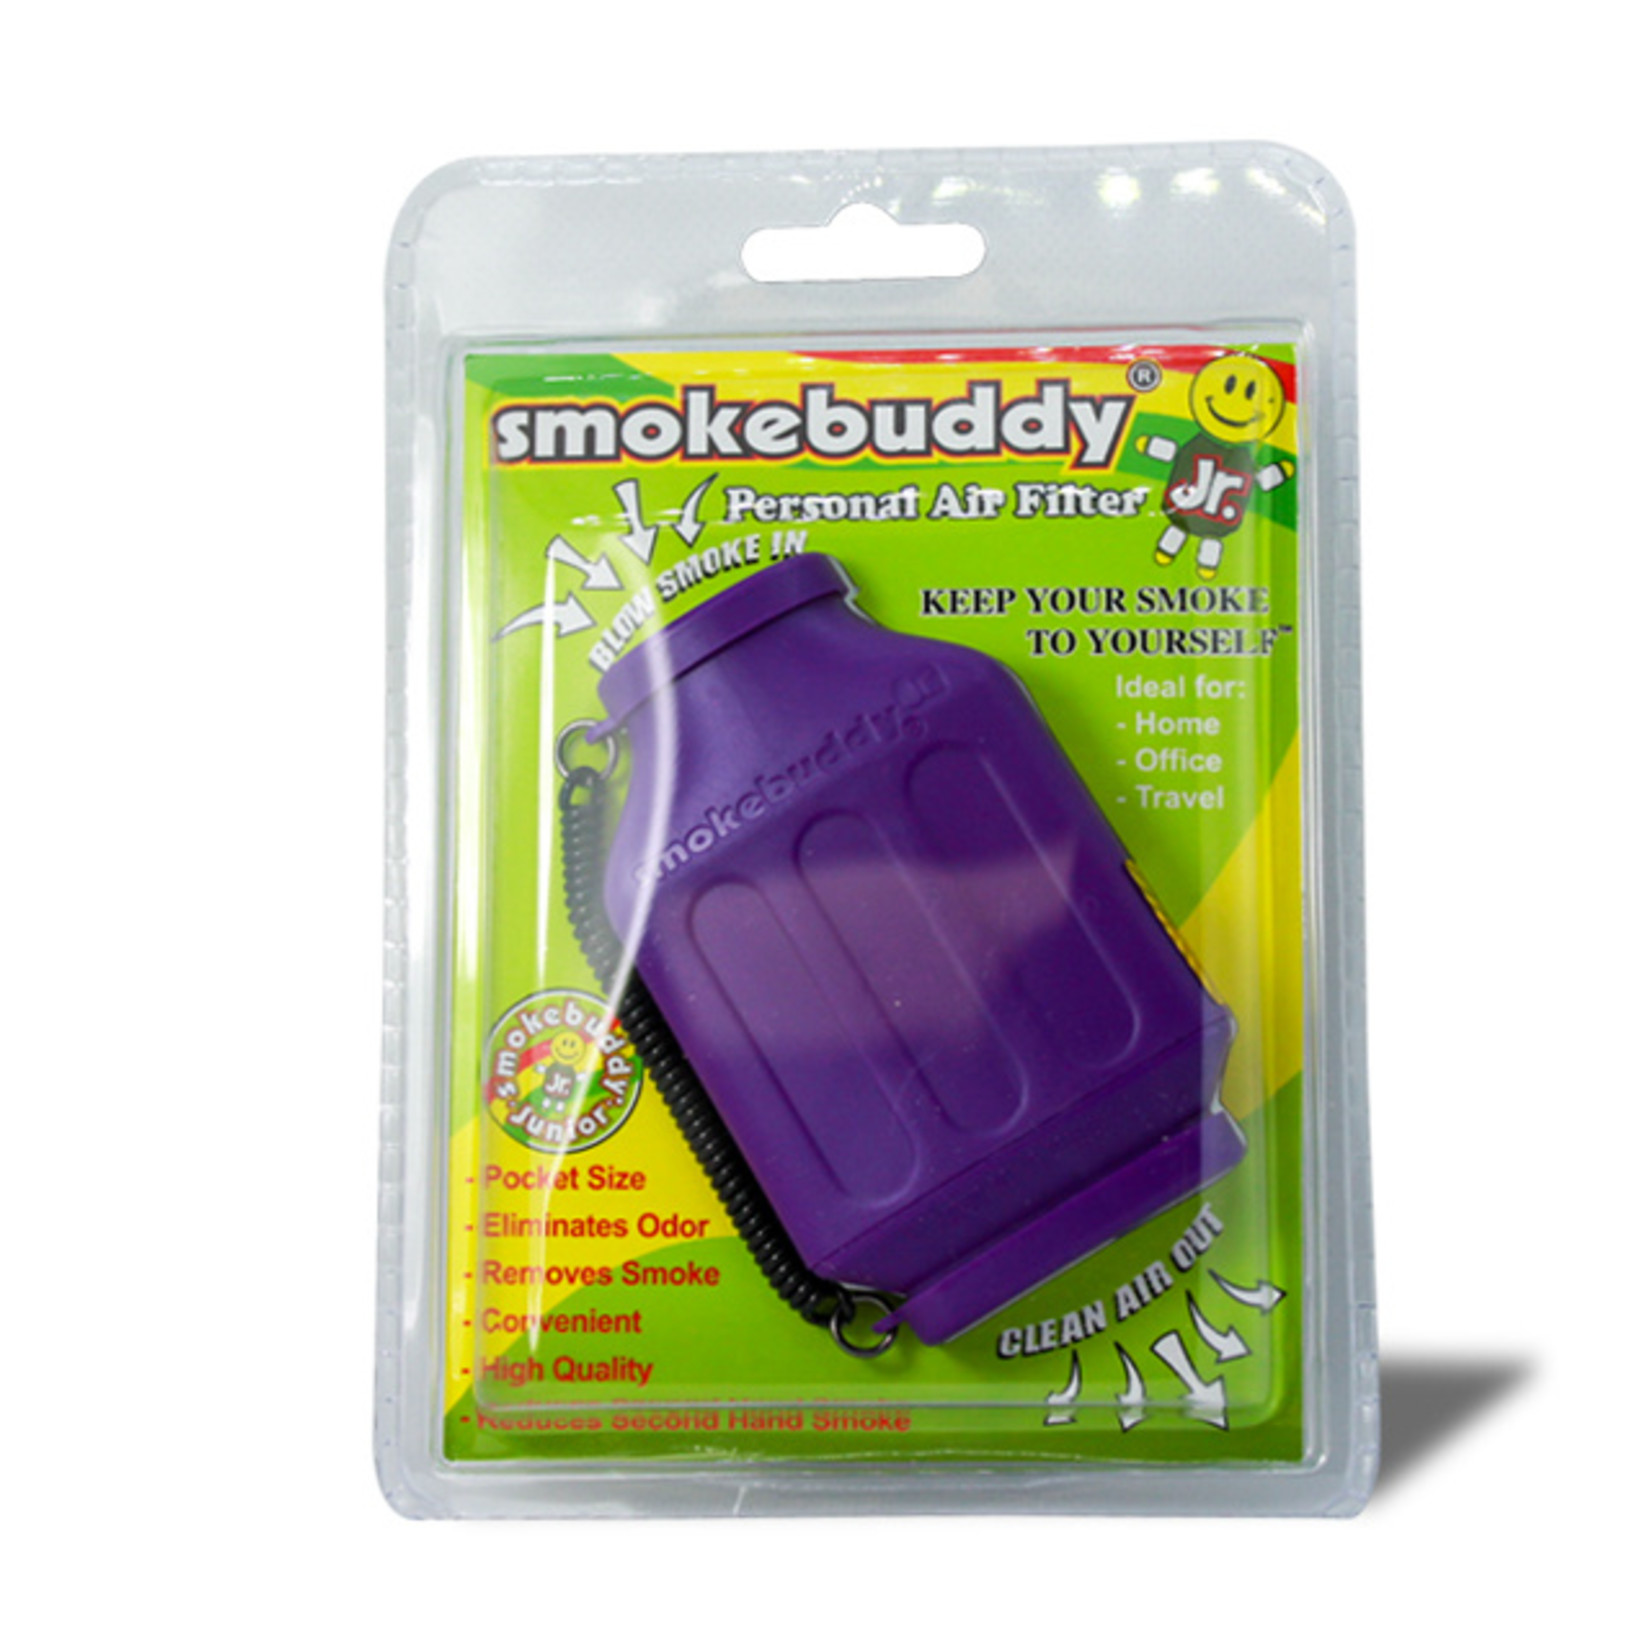 Smoke buddy Personal Air Filter JUNIOR Size